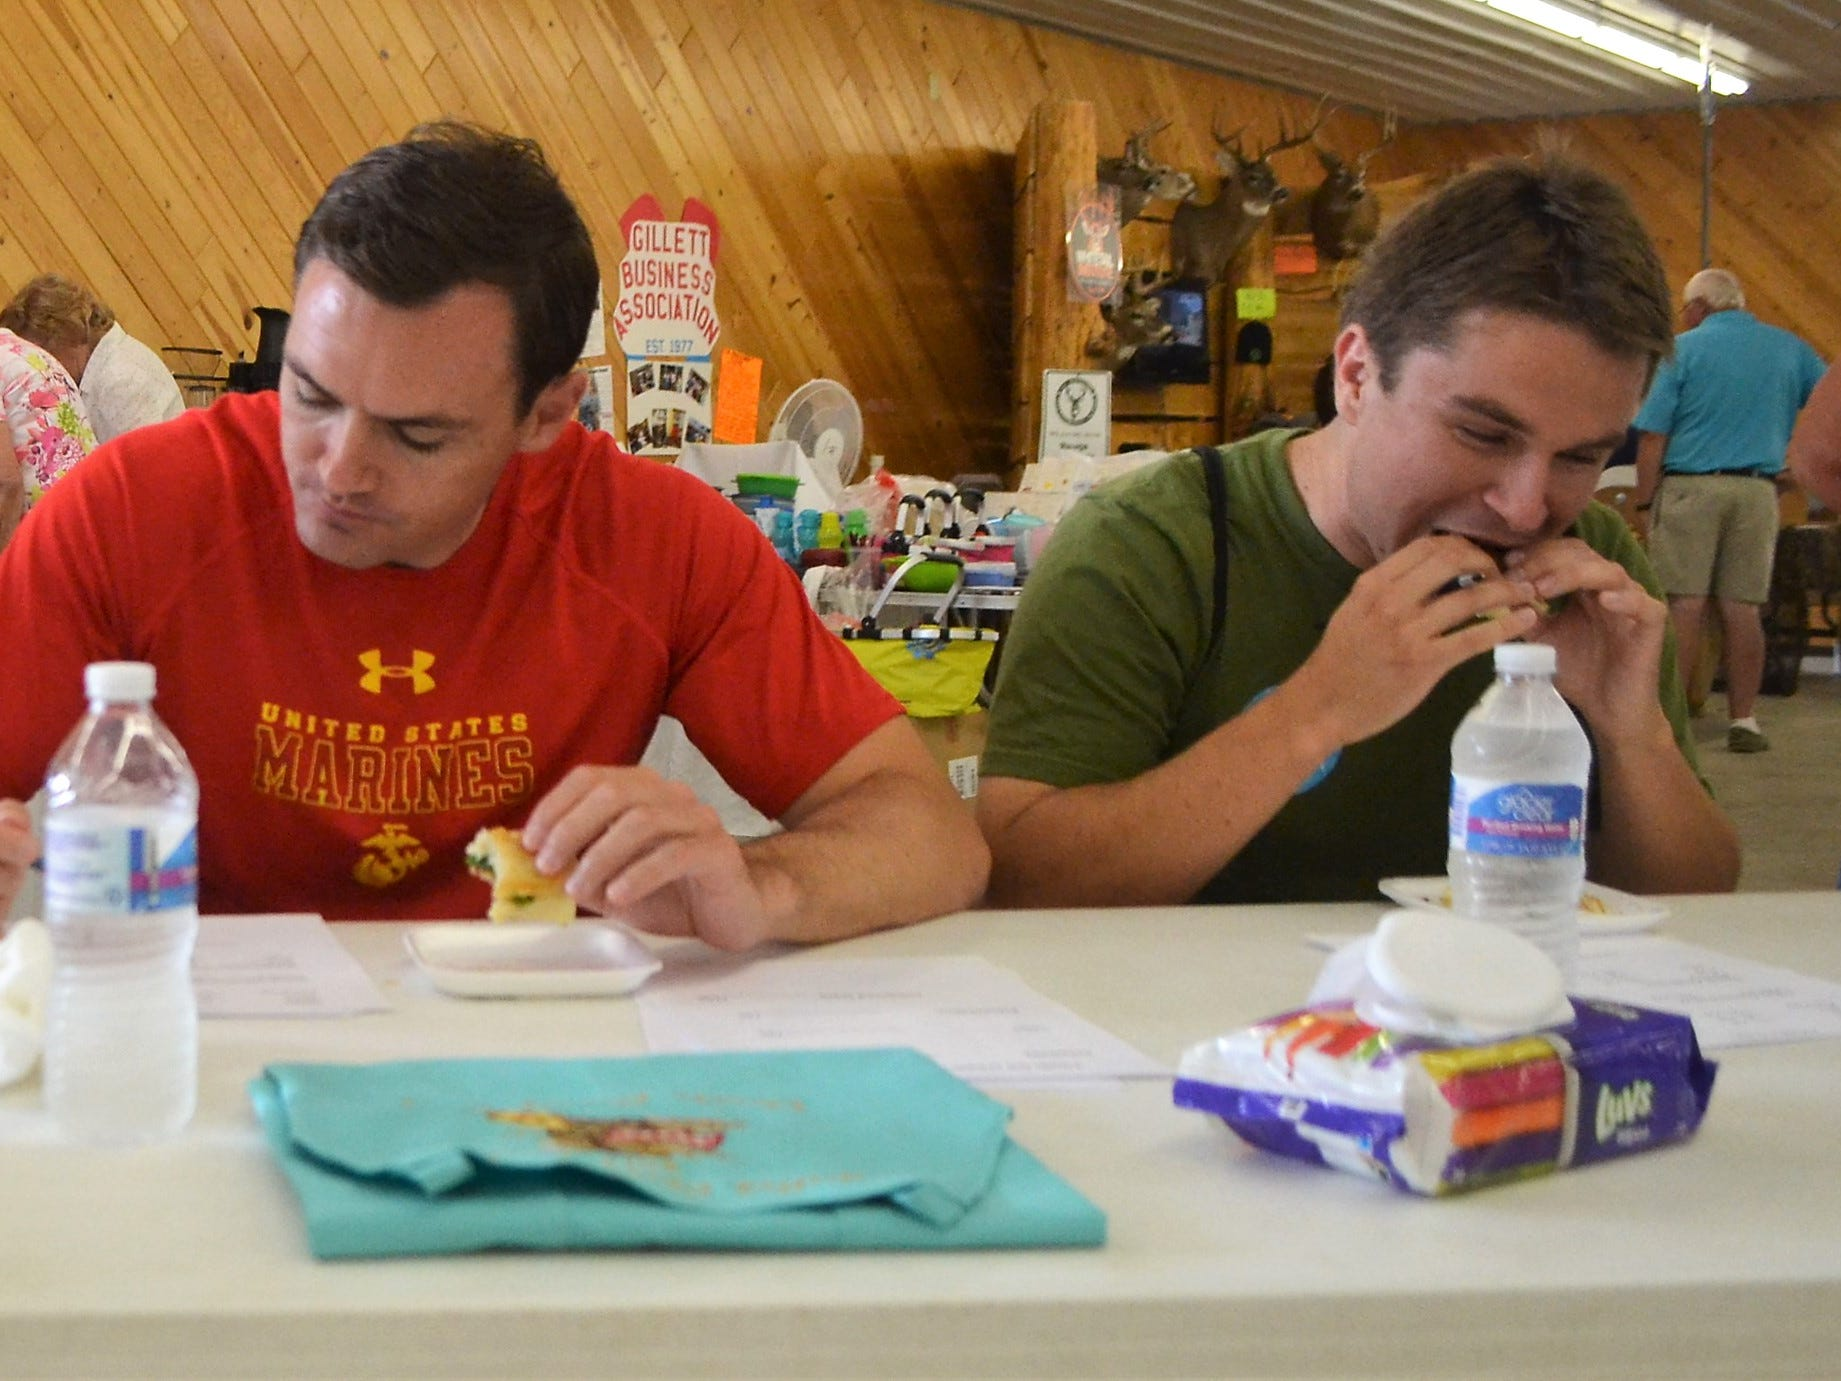 "Max Morales, right, of Green Bay, digs into a grilled sandwich as one of the judges of the Creative Grilled Cheese Sandwich competition at the Oconto County Fair on Saturday, Aug. 18. The other judges were, from left Phil Dickson of the Oconto County Fair Board, and U.S. Rep. Mike Gallagher, who are filling out score sheets. Morales, an organizer for the Democratic Party in the area, quipped that judging with Gallagher ""is our bipartisan cooperation for the day."""